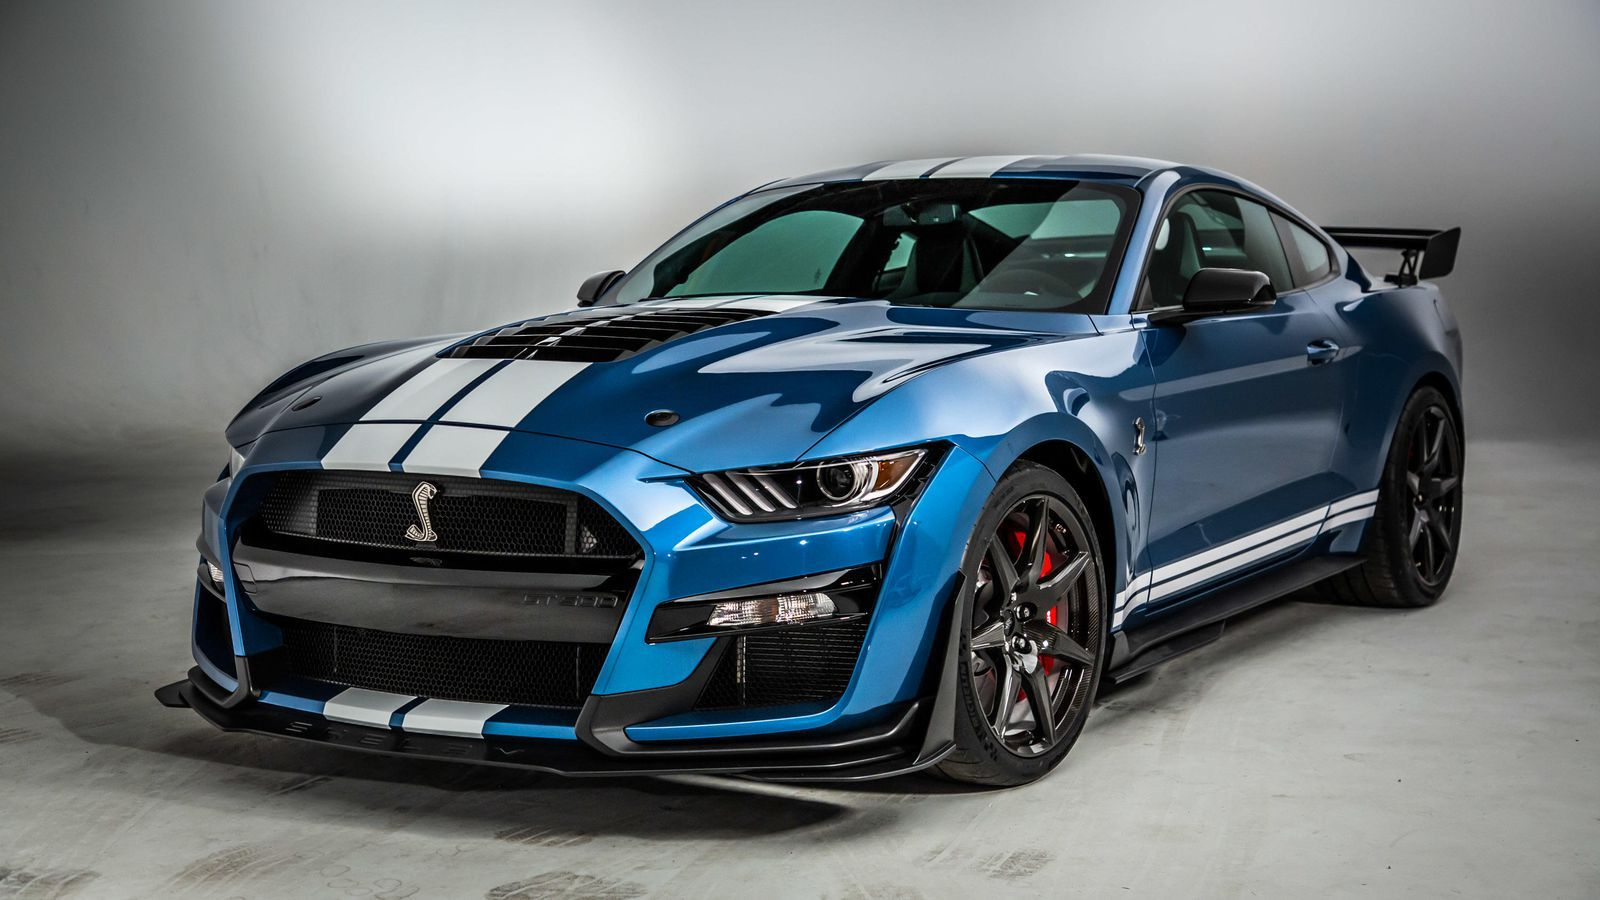 2020 Ford Mustang Shelby Gt500 Brings 760 Horsepower To Compete